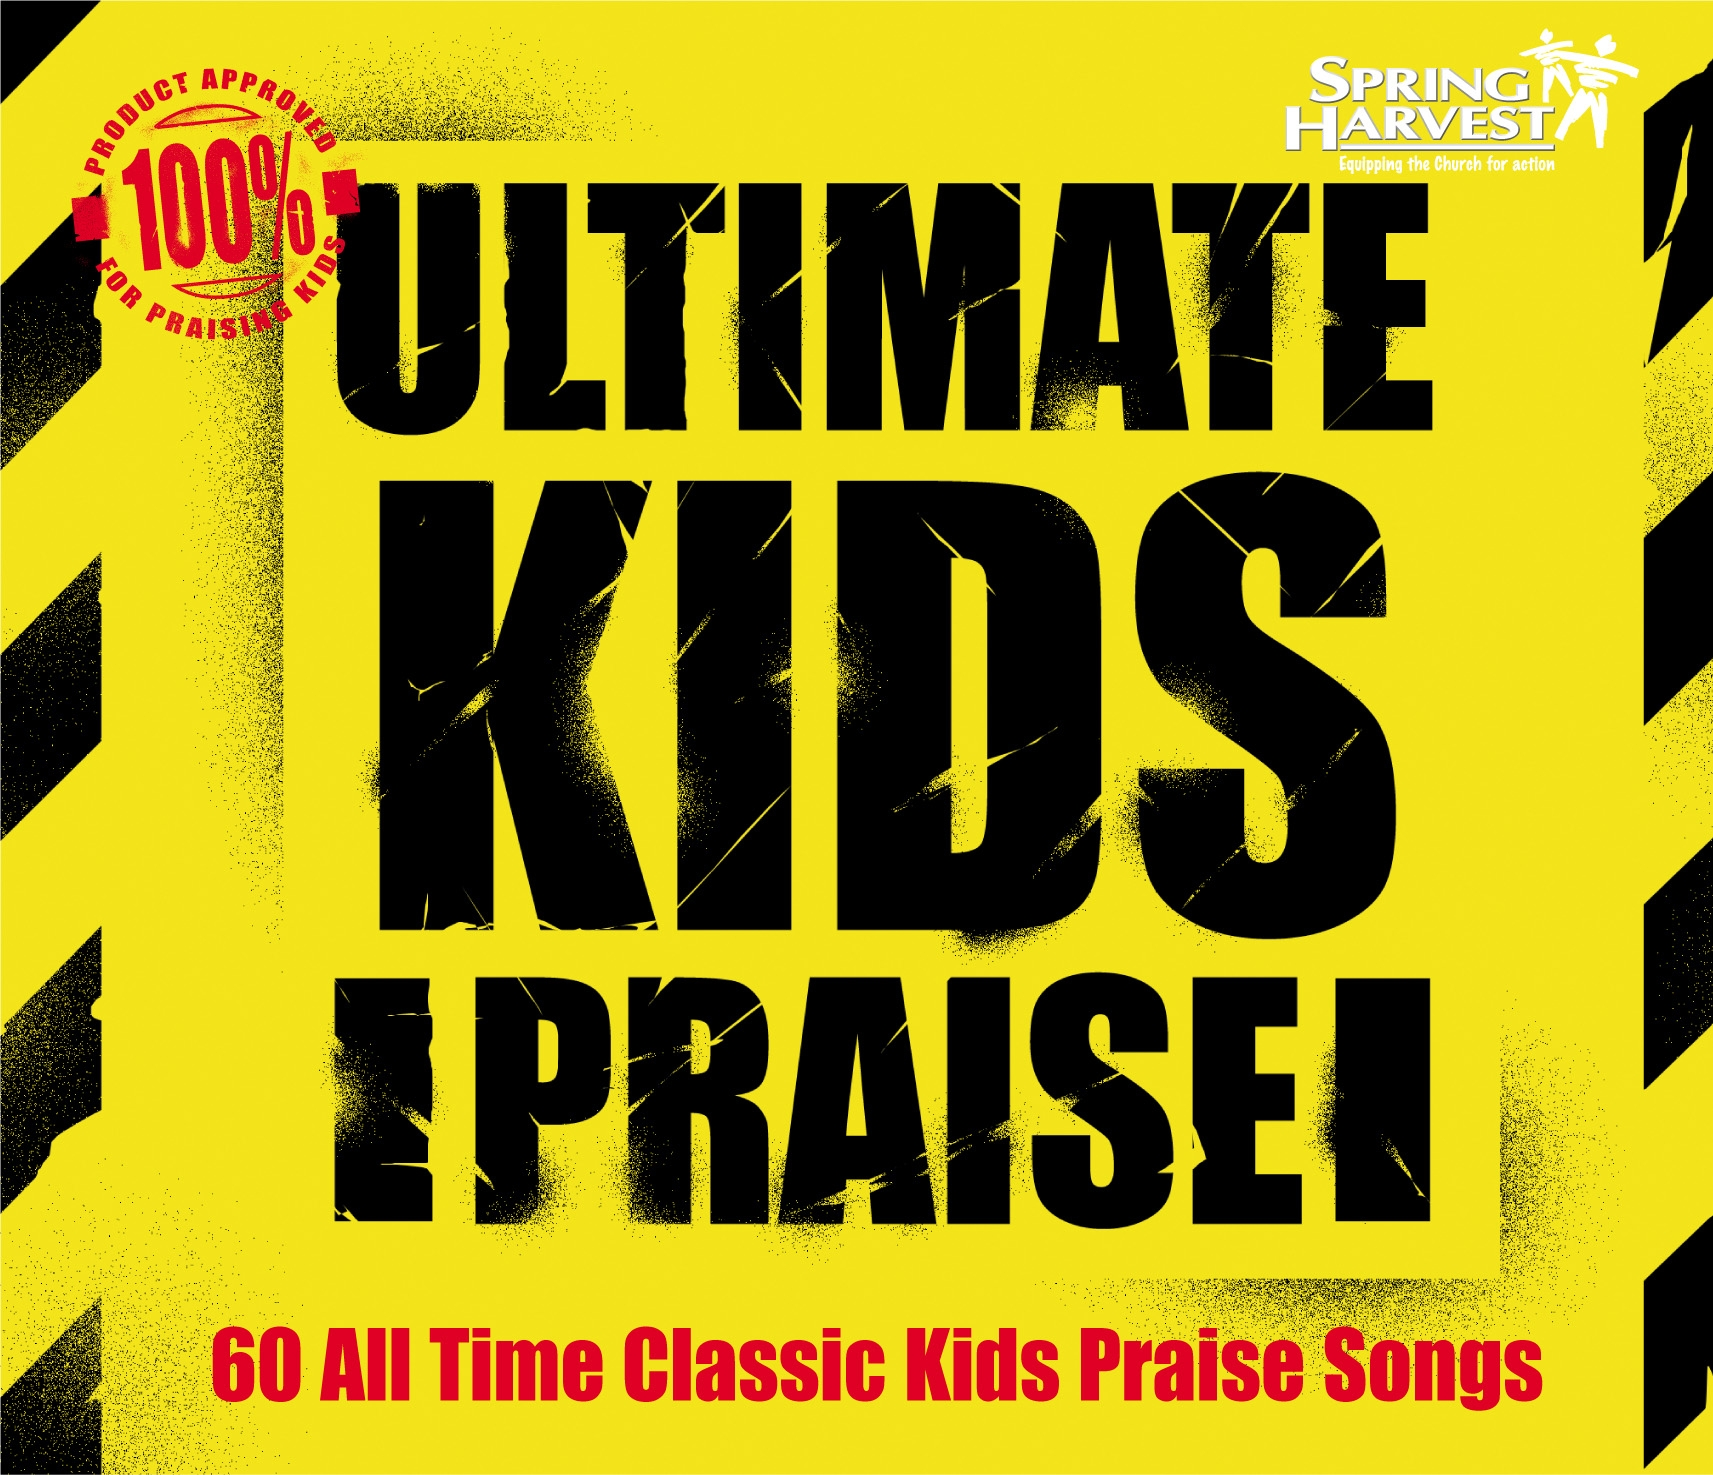 Ultimate Kids Praise | Free Delivery @ Eden co uk